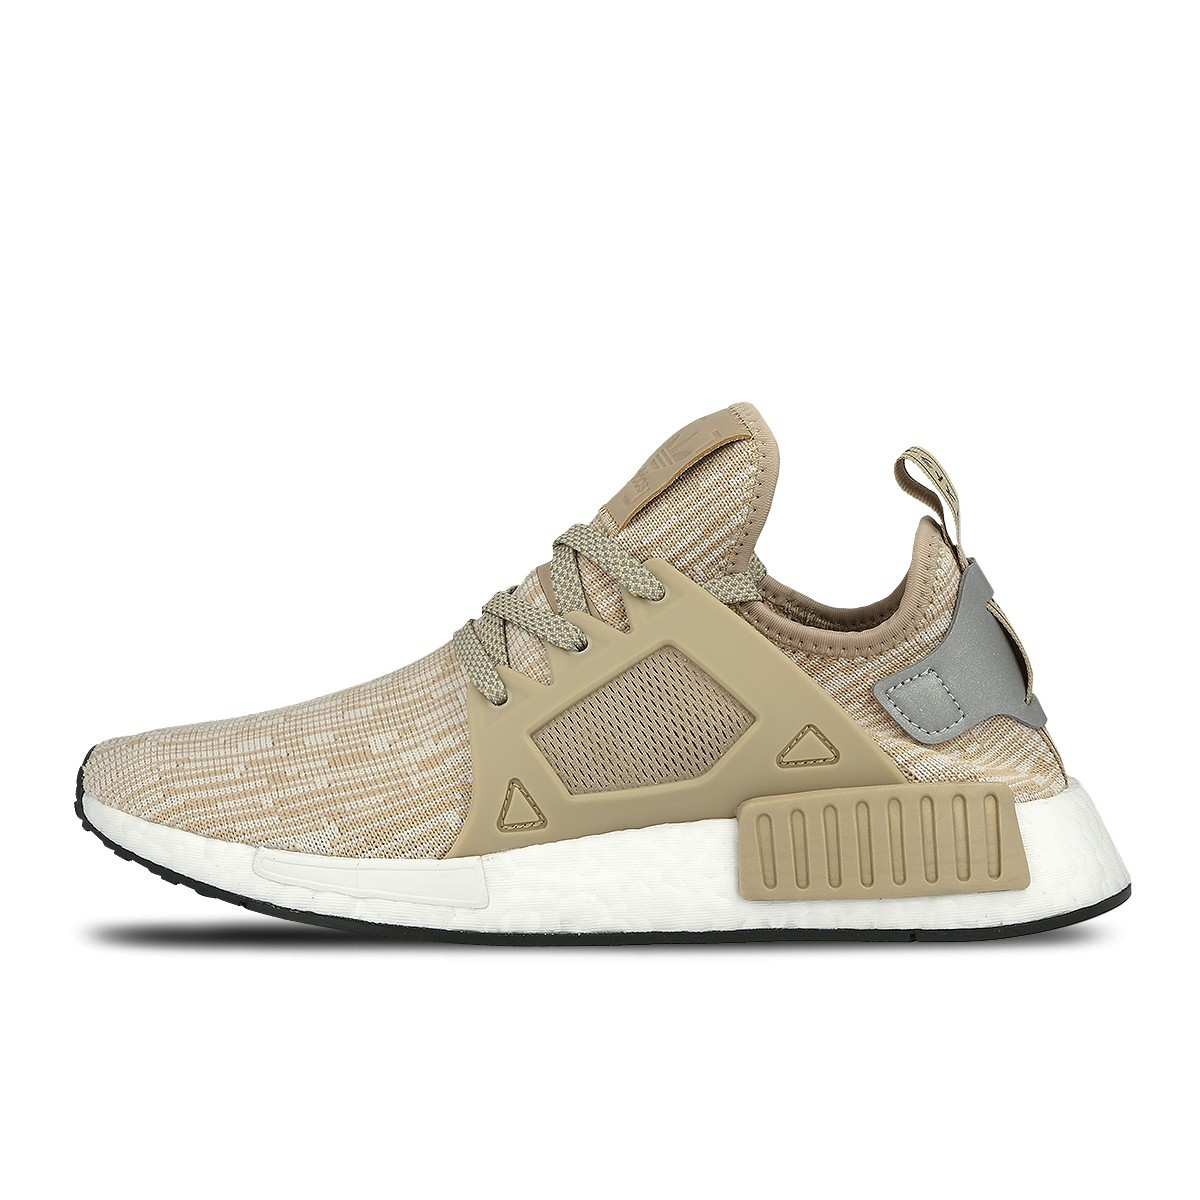 adidas Originals S77194 Sneakers Homme Beige Beige - Chaussures Baskets basses Homme